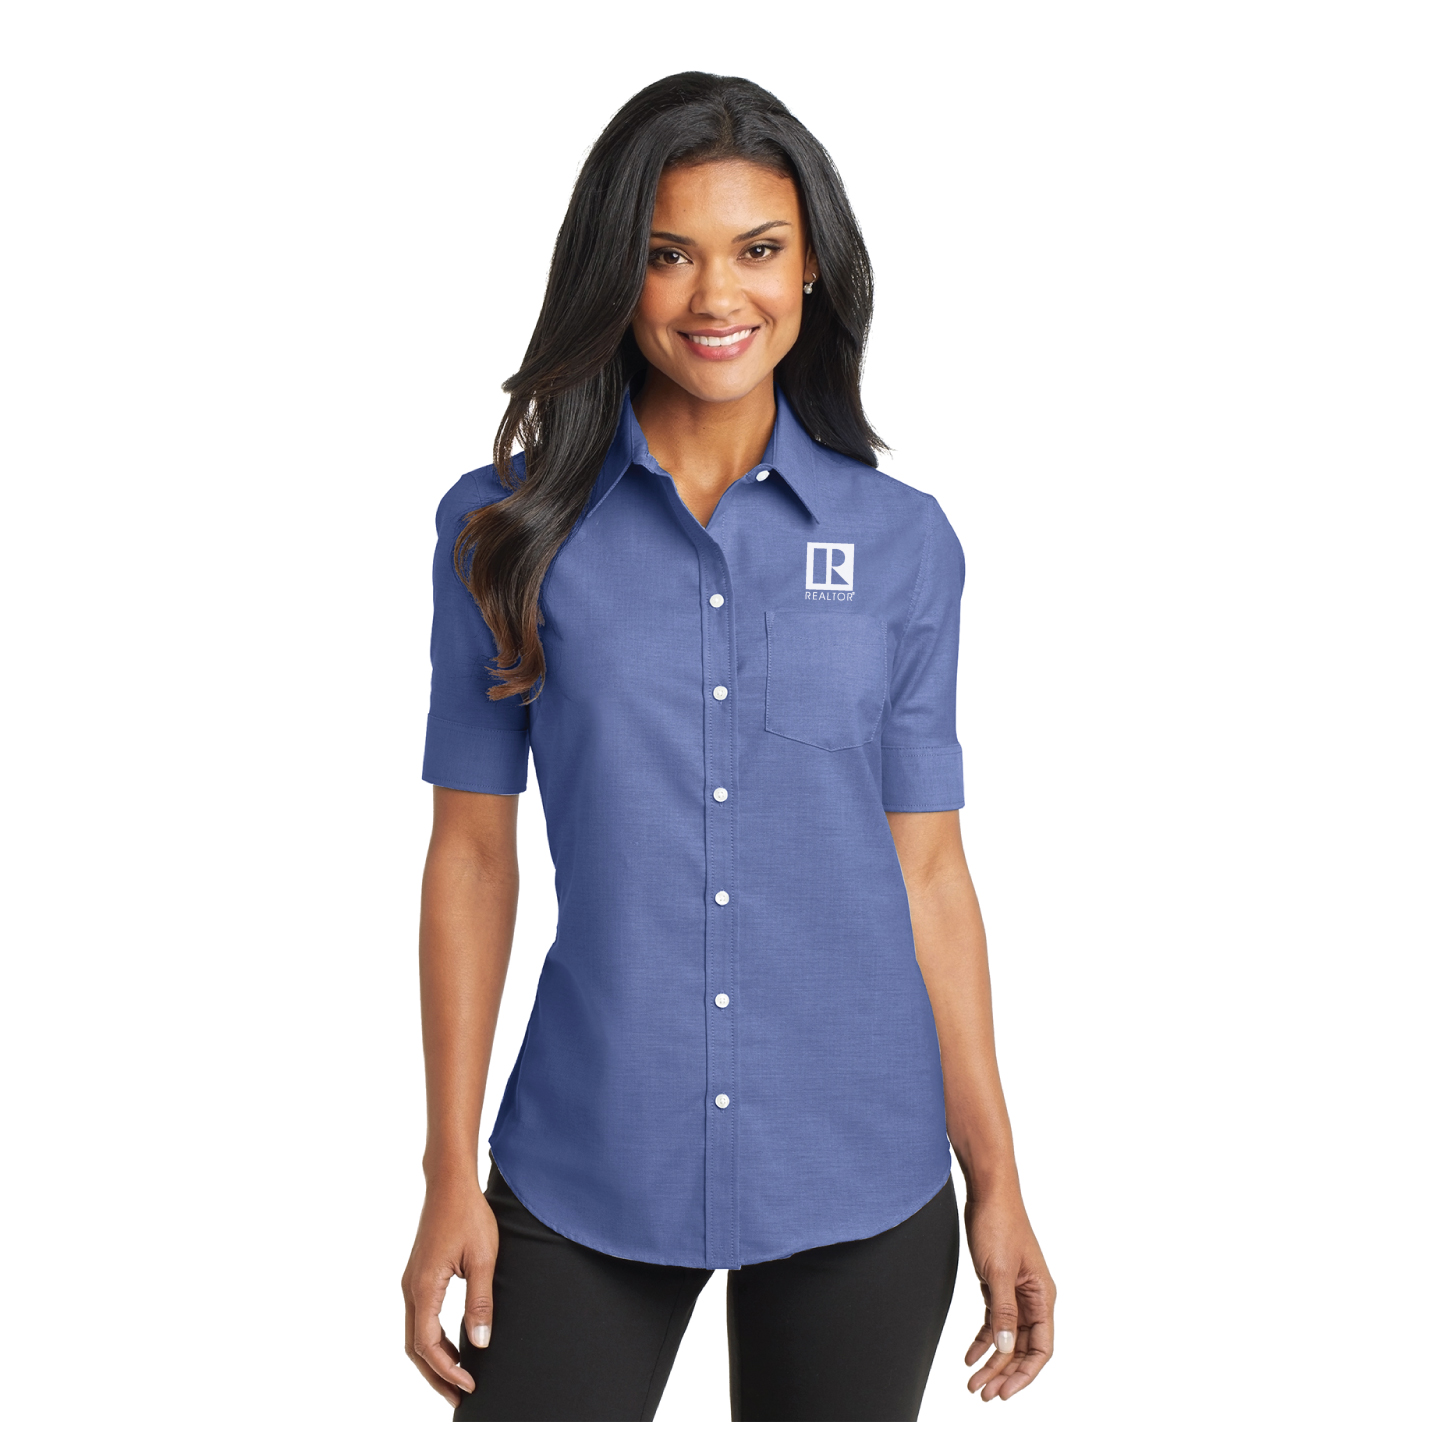 Ladies Short Sleeve Oxford Shirt Oxford, 3/4, Short Sleeve, Business, Professional, Dress, Woven, Collar, Collared, RCE